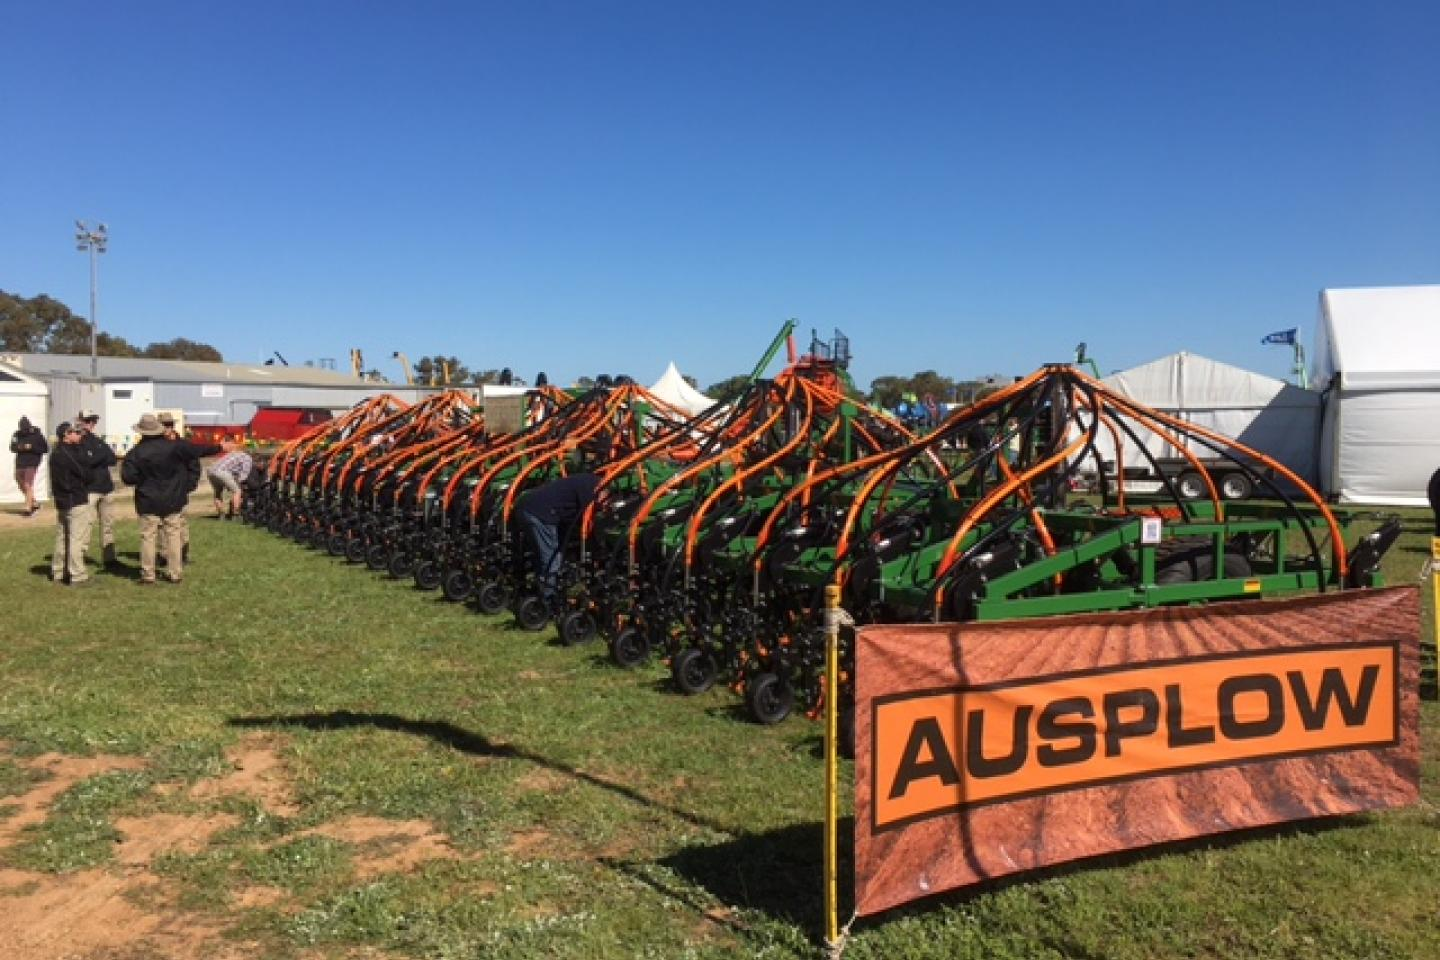 Ausplow's display at this year's Dowerin field days showcased its popular DBS precision seeder and Series II Multistream air seeder. As usual, the company's specialist staff were on hand to assist with inquiries.